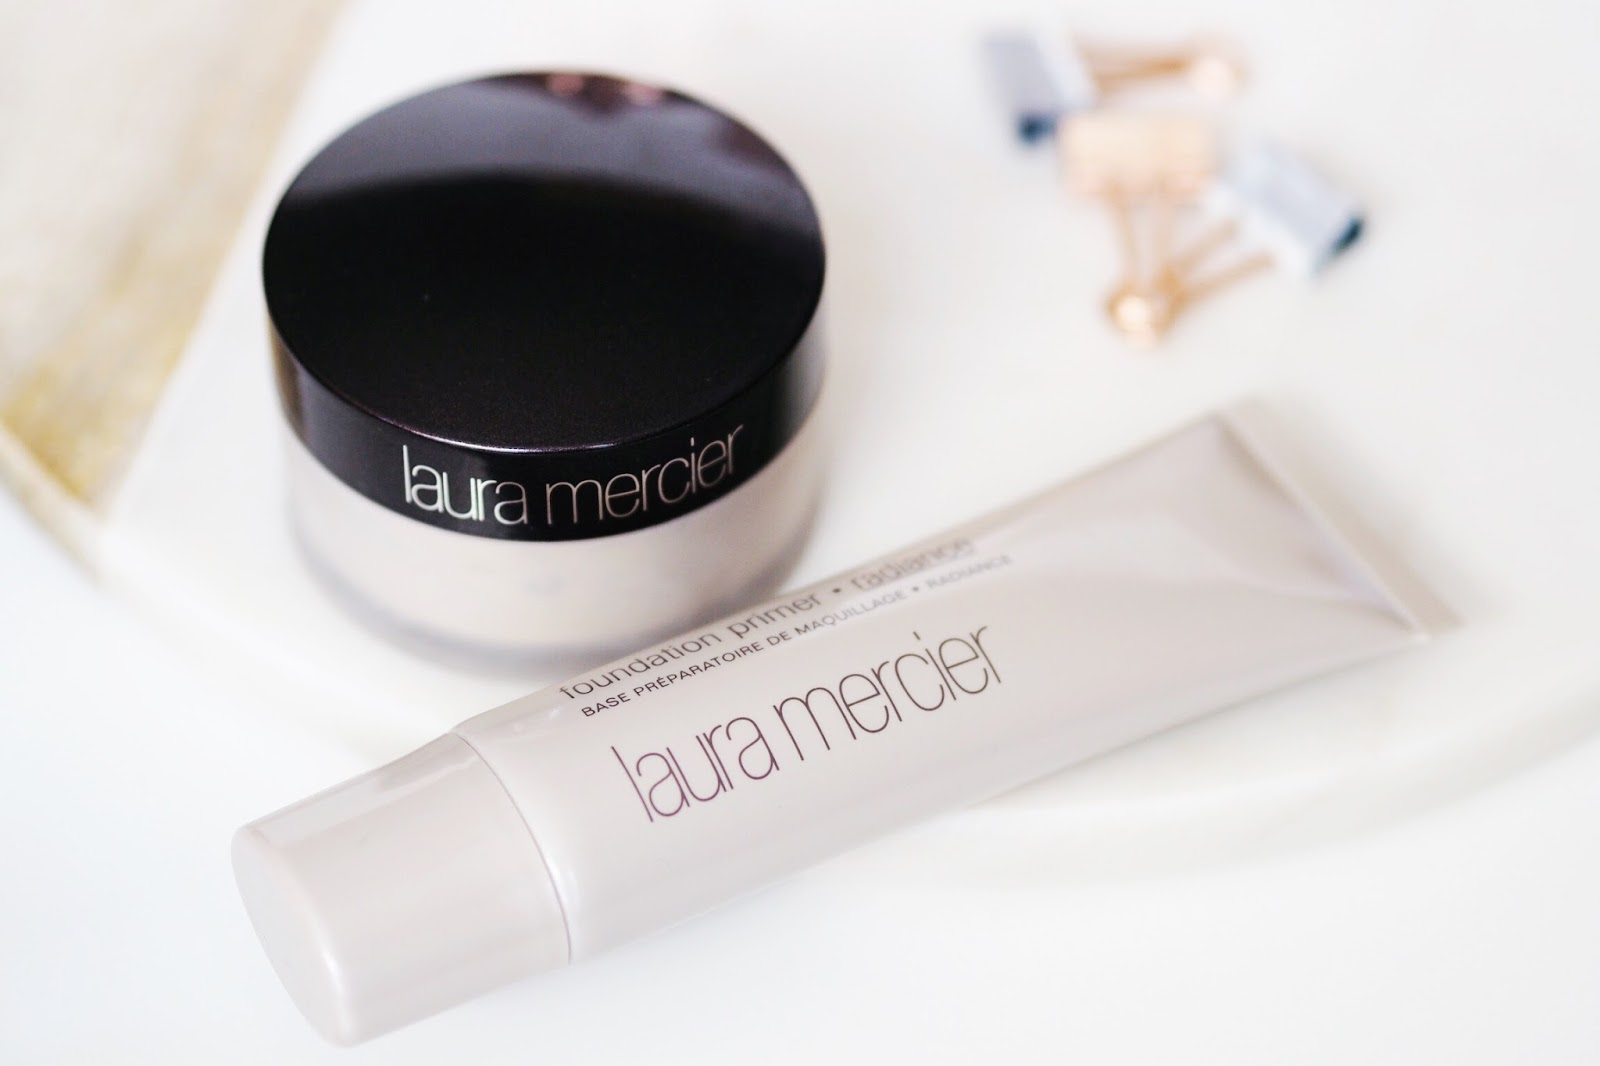 Laura Mercier setting powder radiance primer review